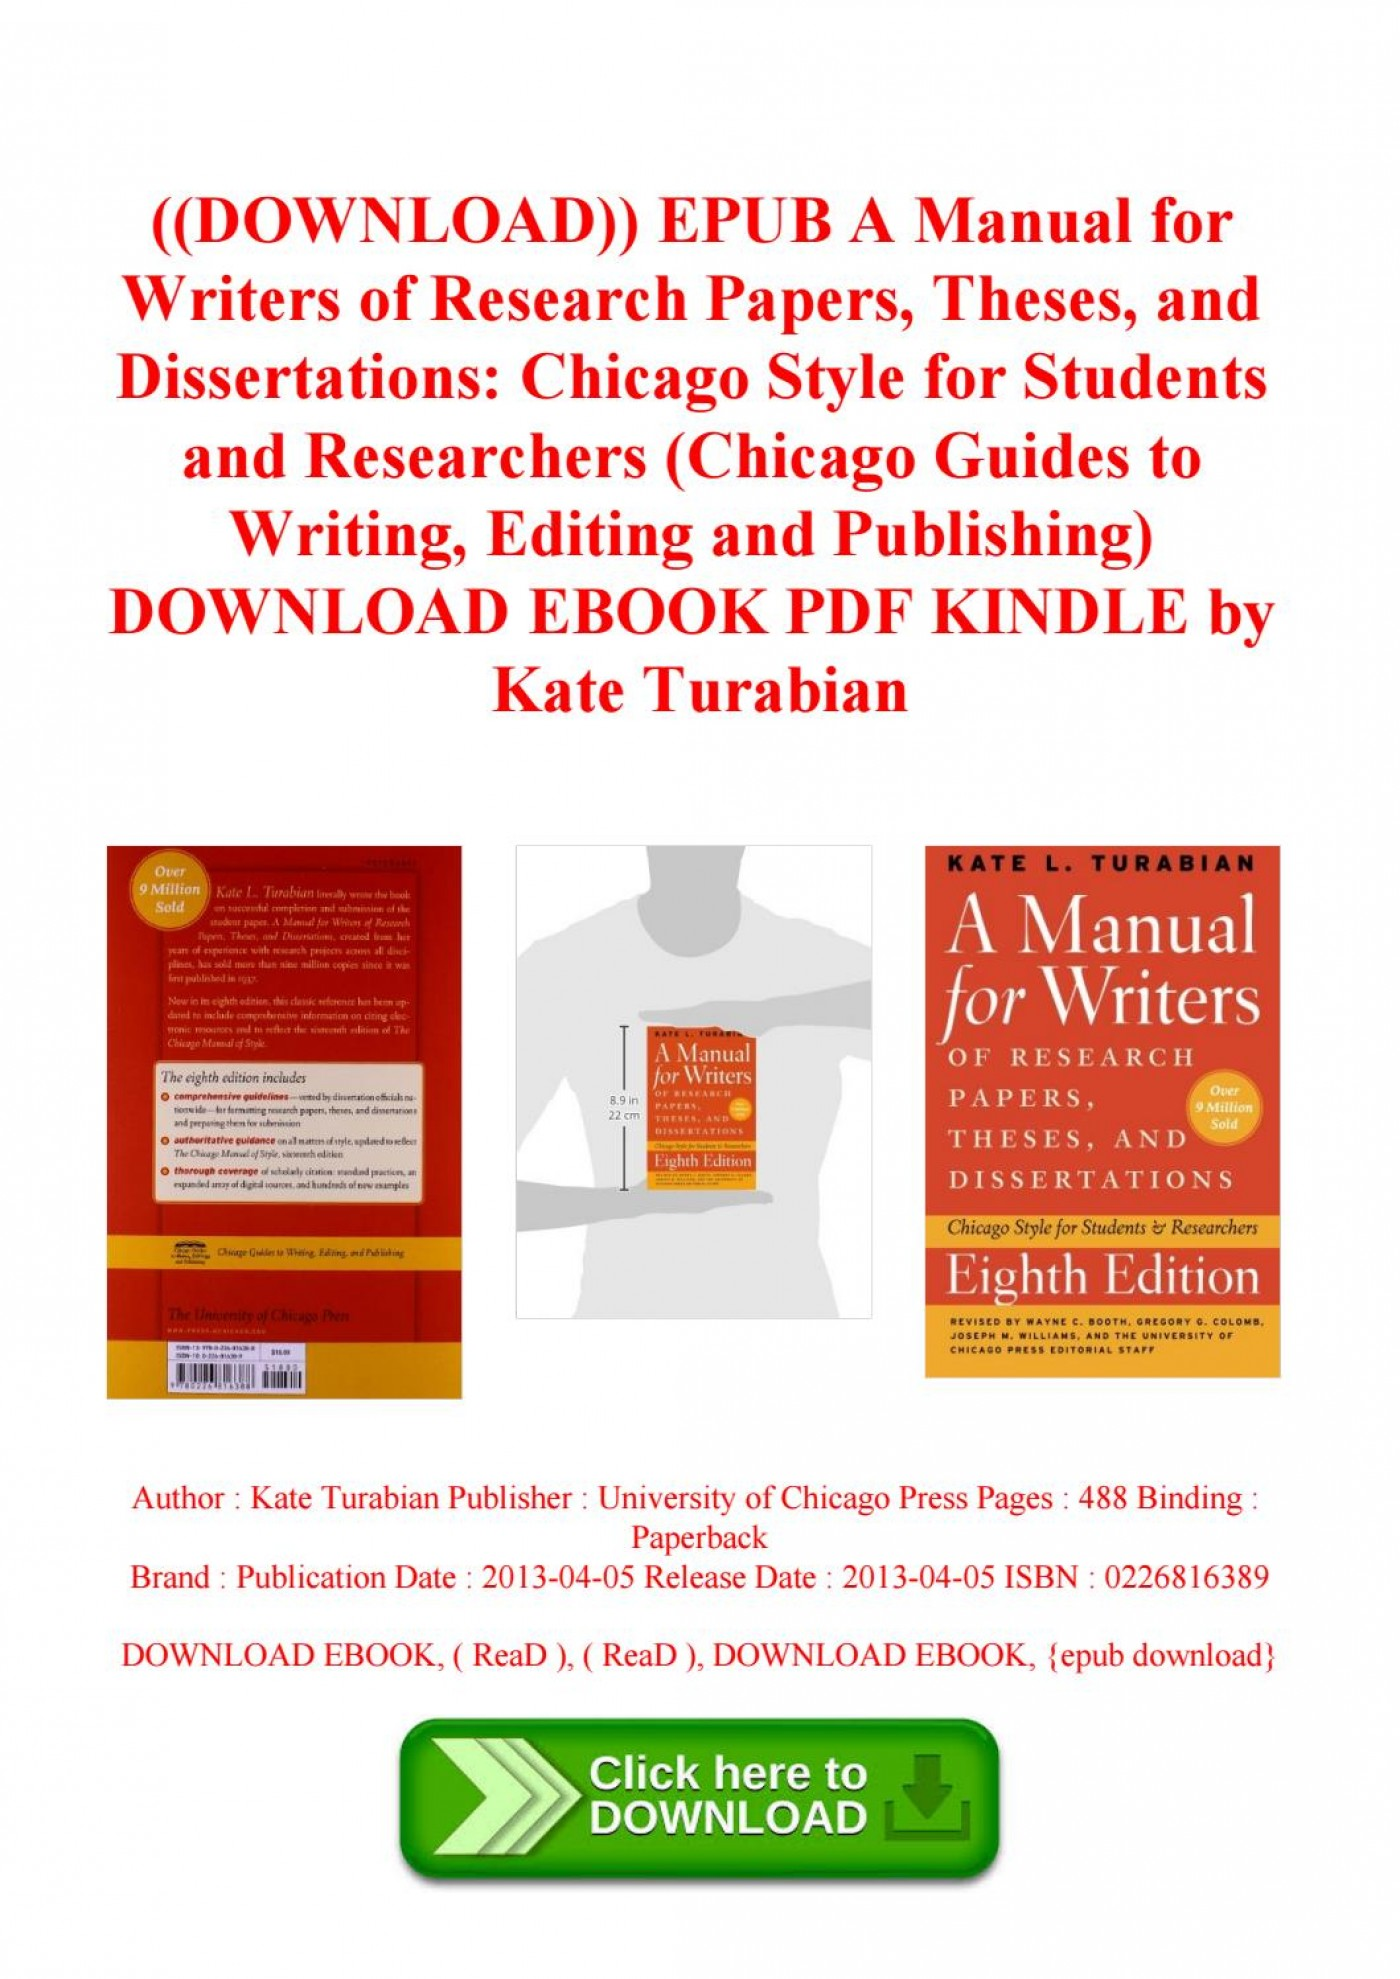 019 Page 1 Manual For Writers Of Researchs Theses And Dissertations Turabian Amazing A Research Papers Pdf 1400